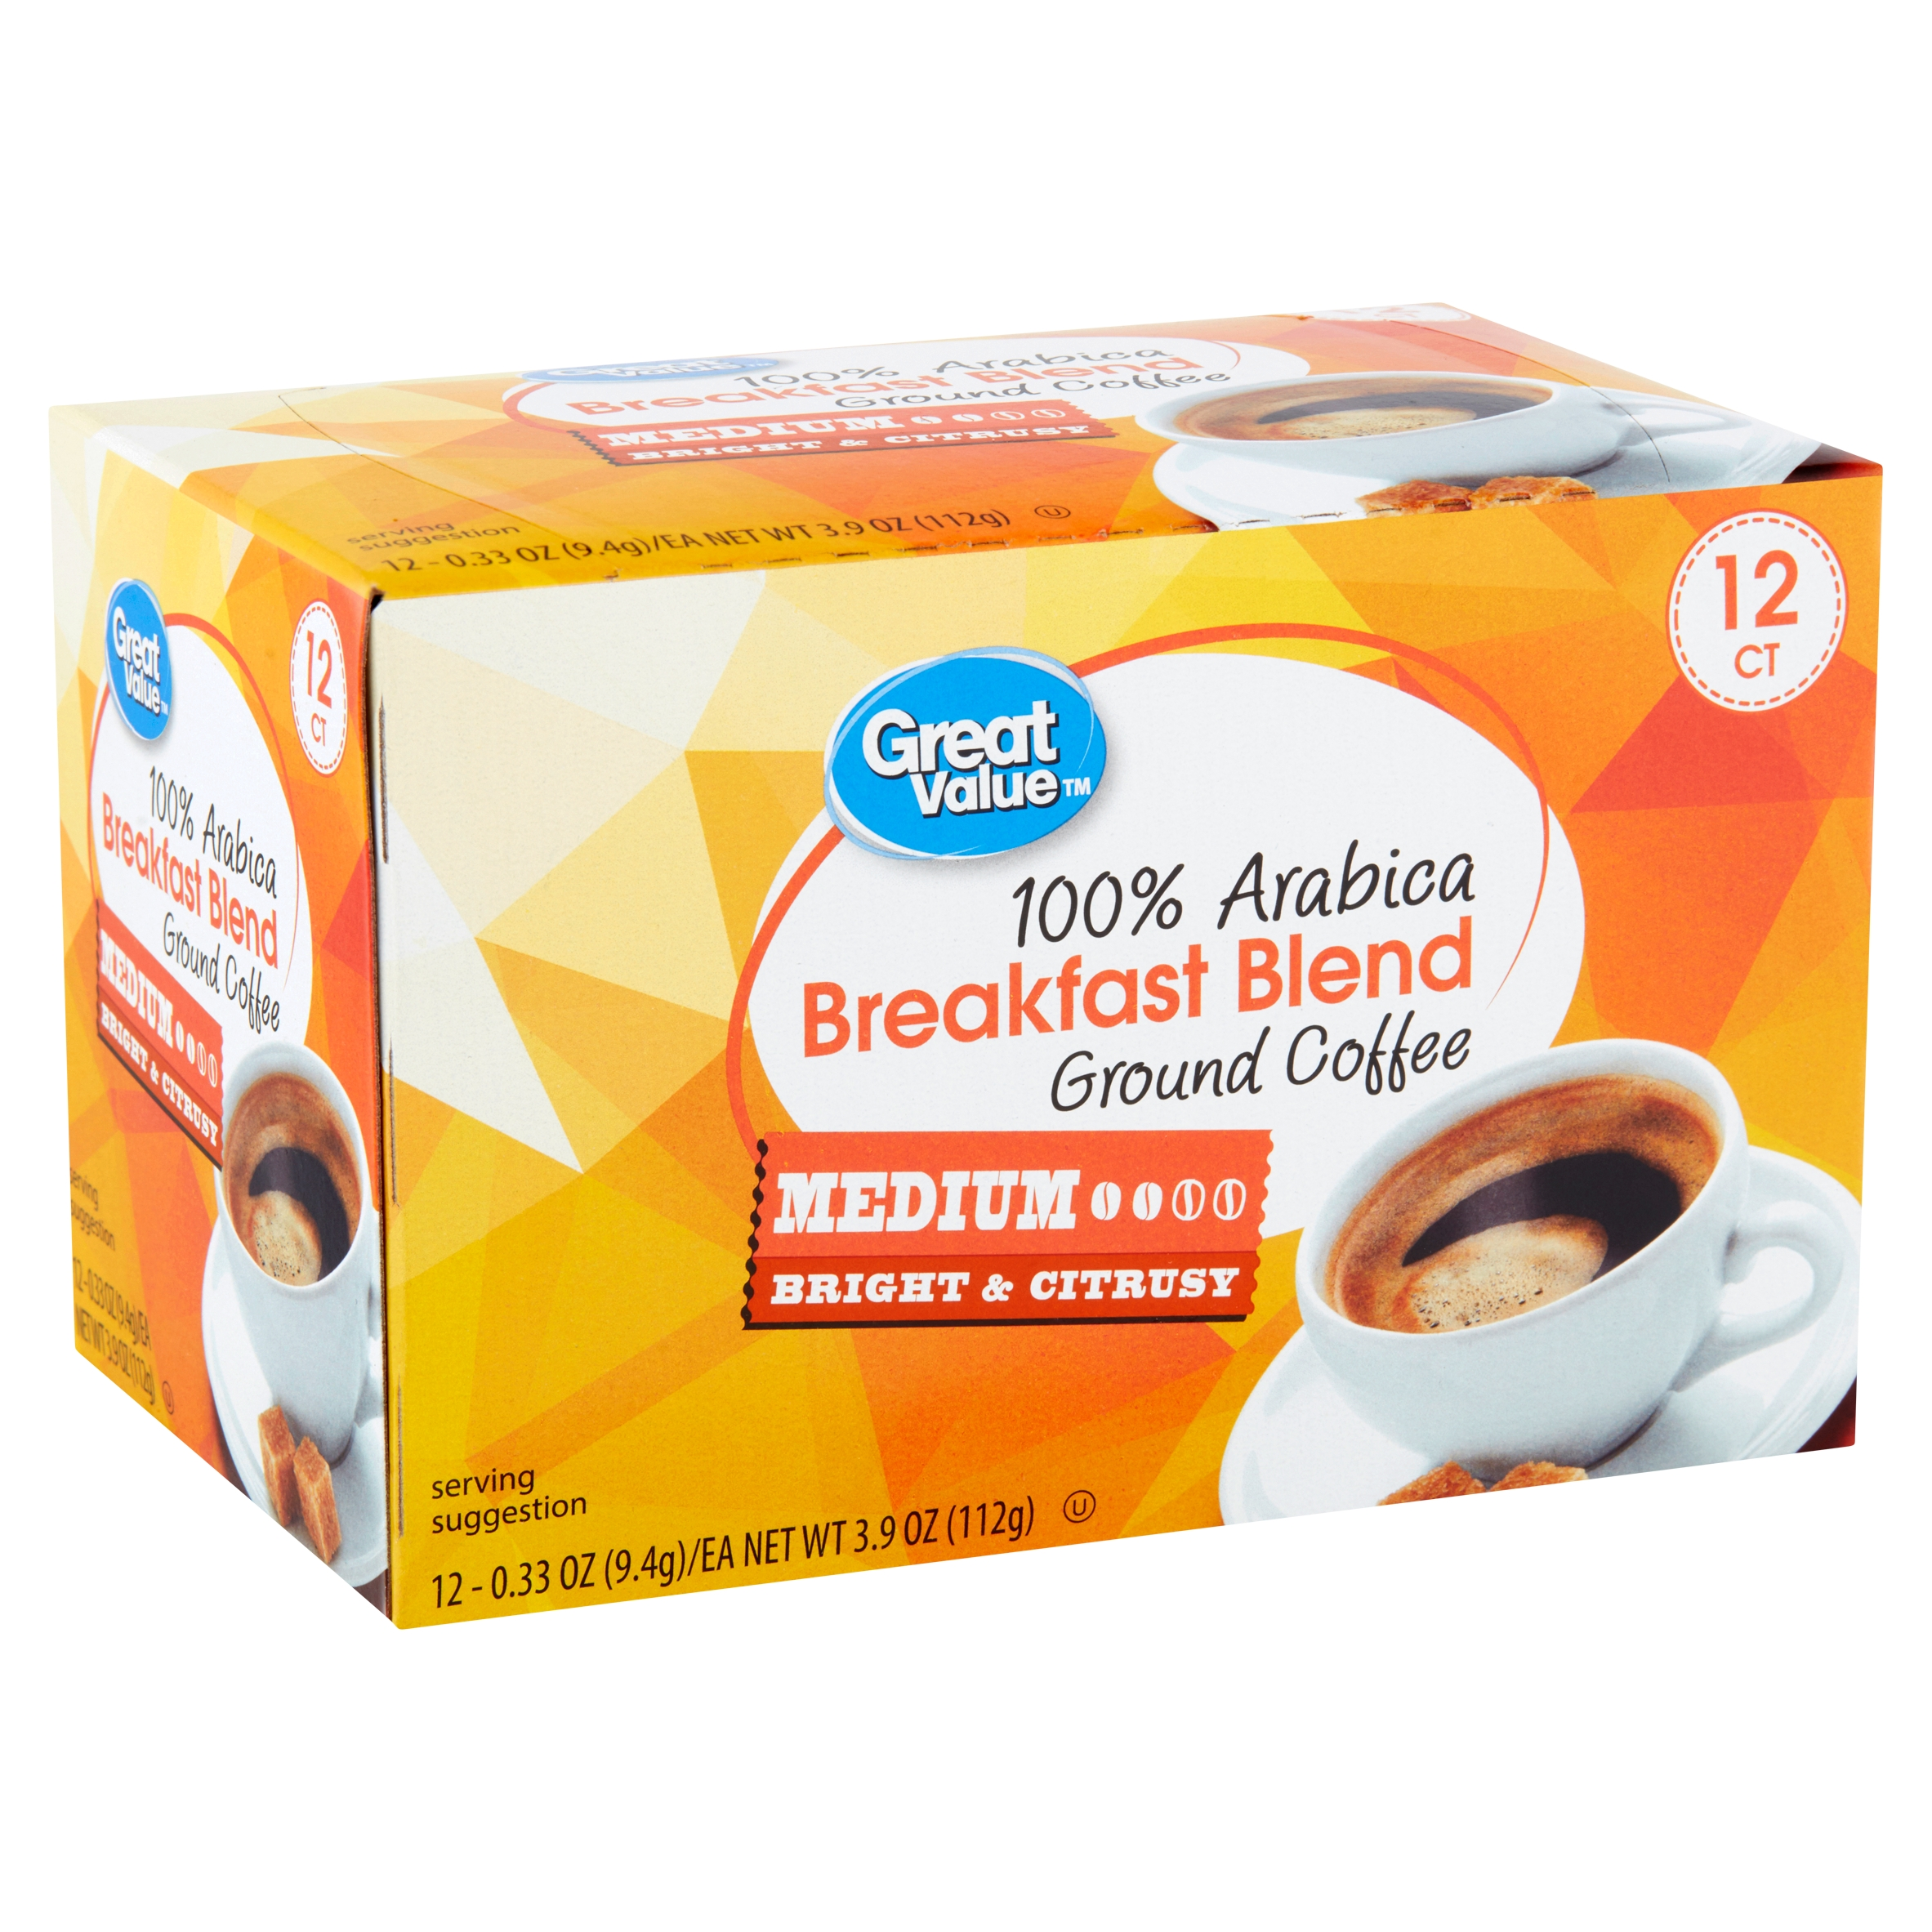 Great Value 100% Arabica Breakfast Blend Medium Ground Coffee, 0.33 oz, 12 count